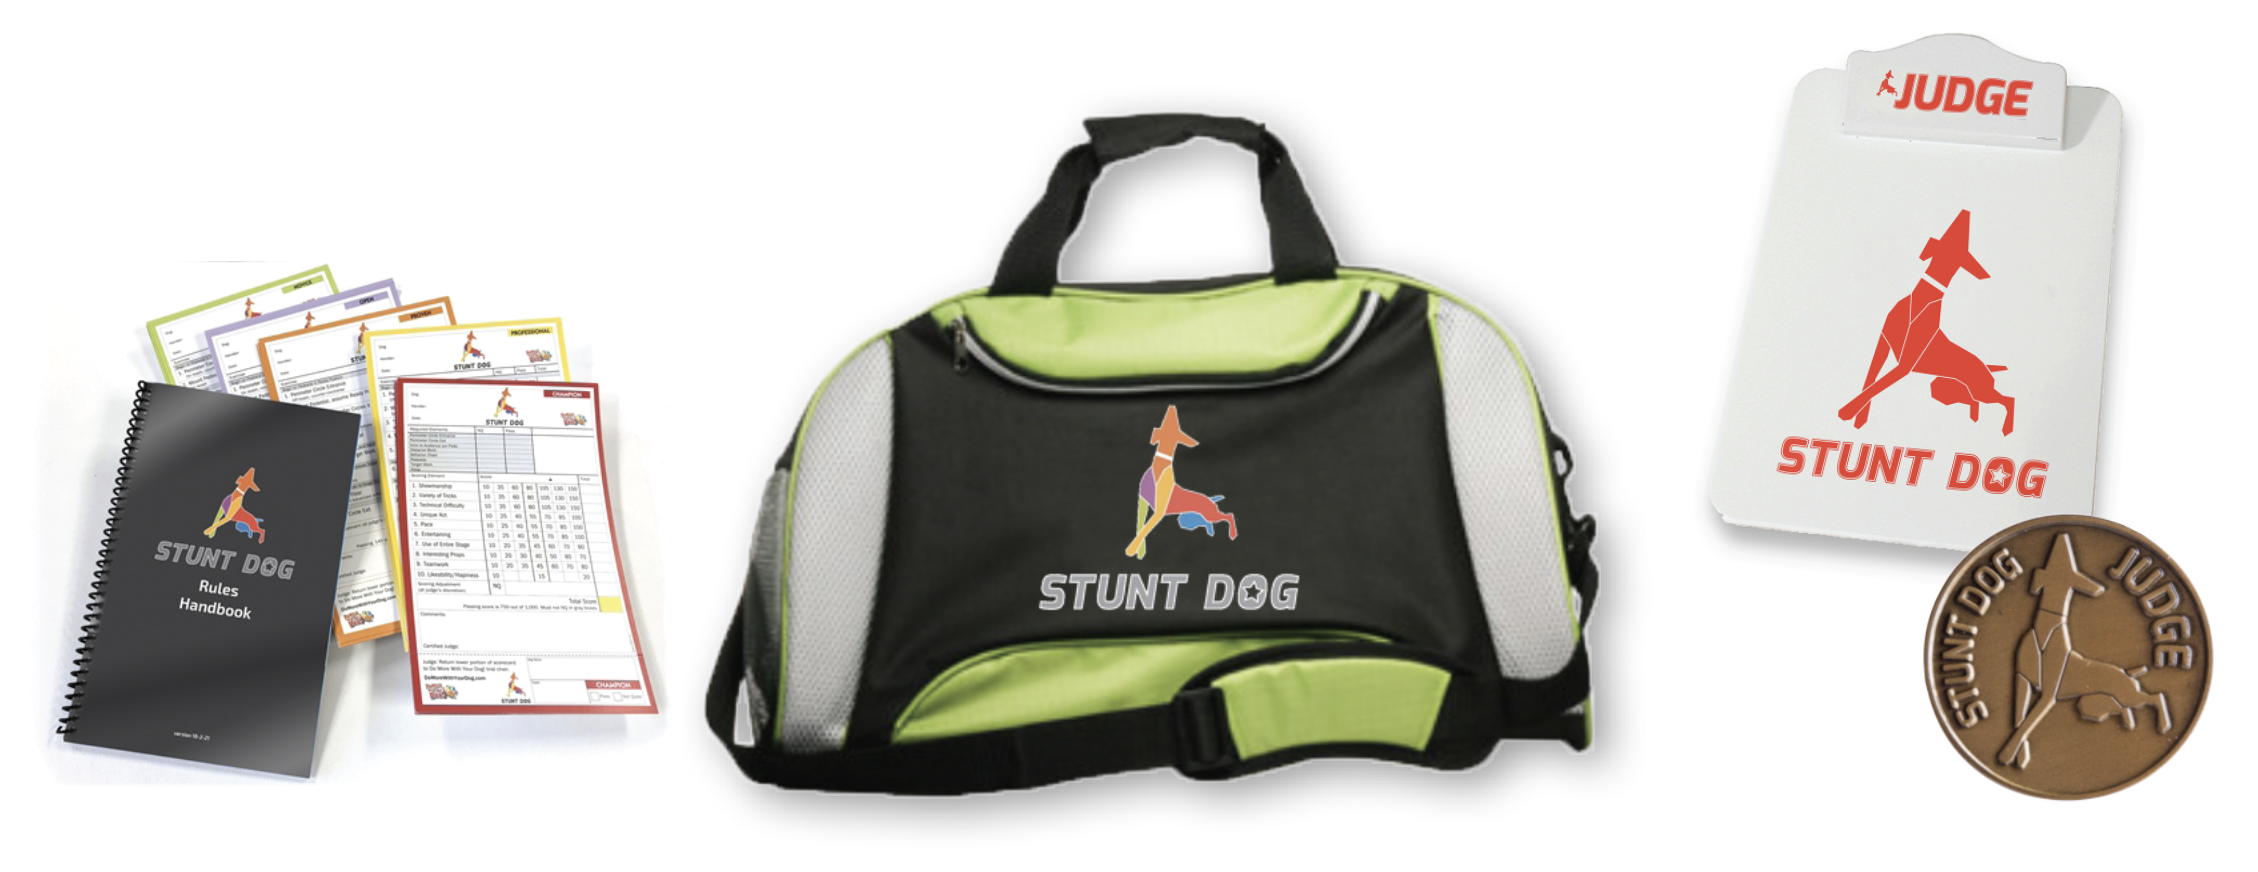 Comes with Free Stunt Dog Kit!